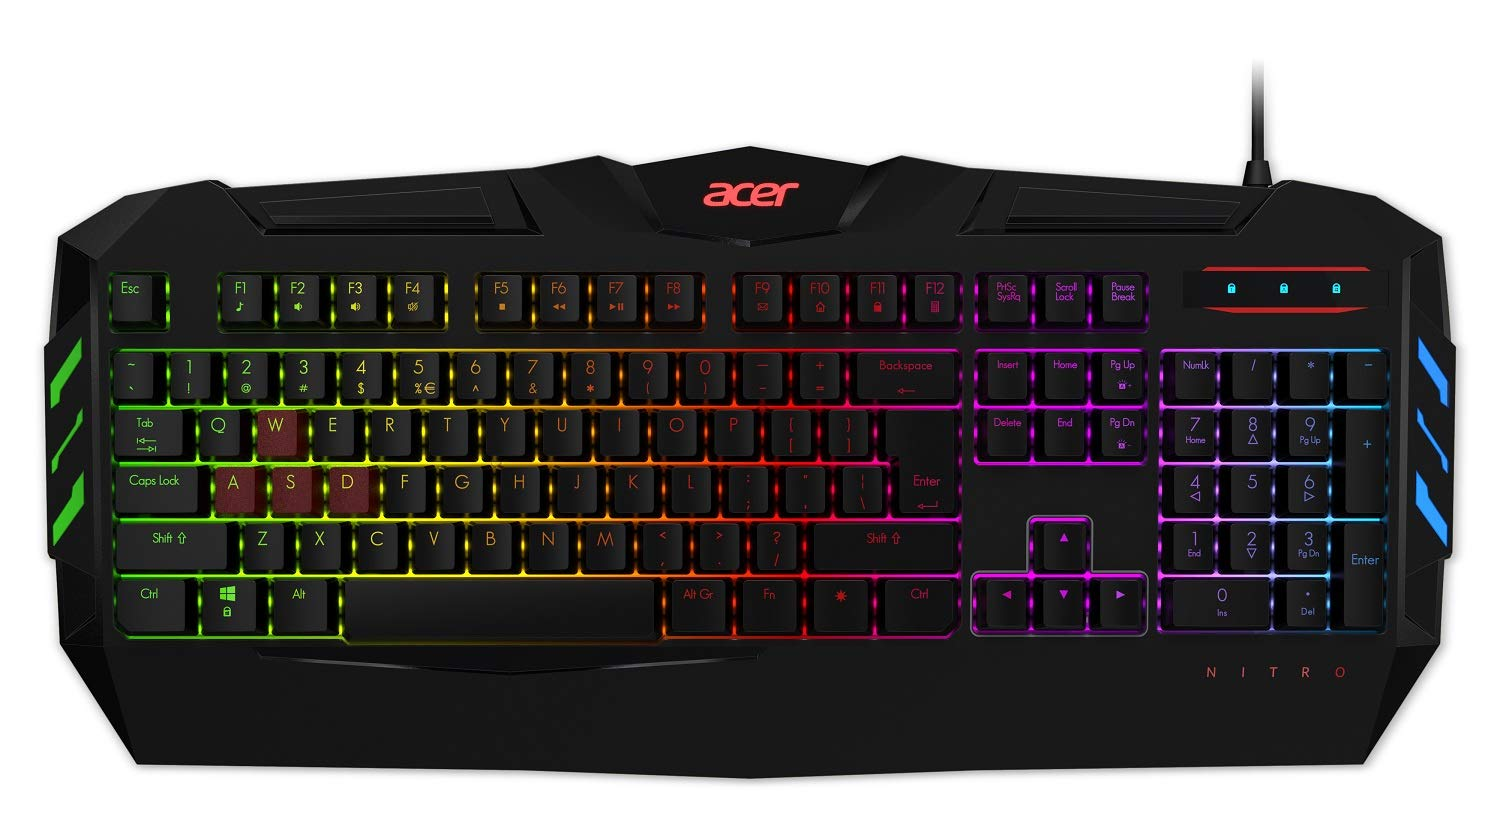 Acer Nitro NKB810 Gaming keyboard